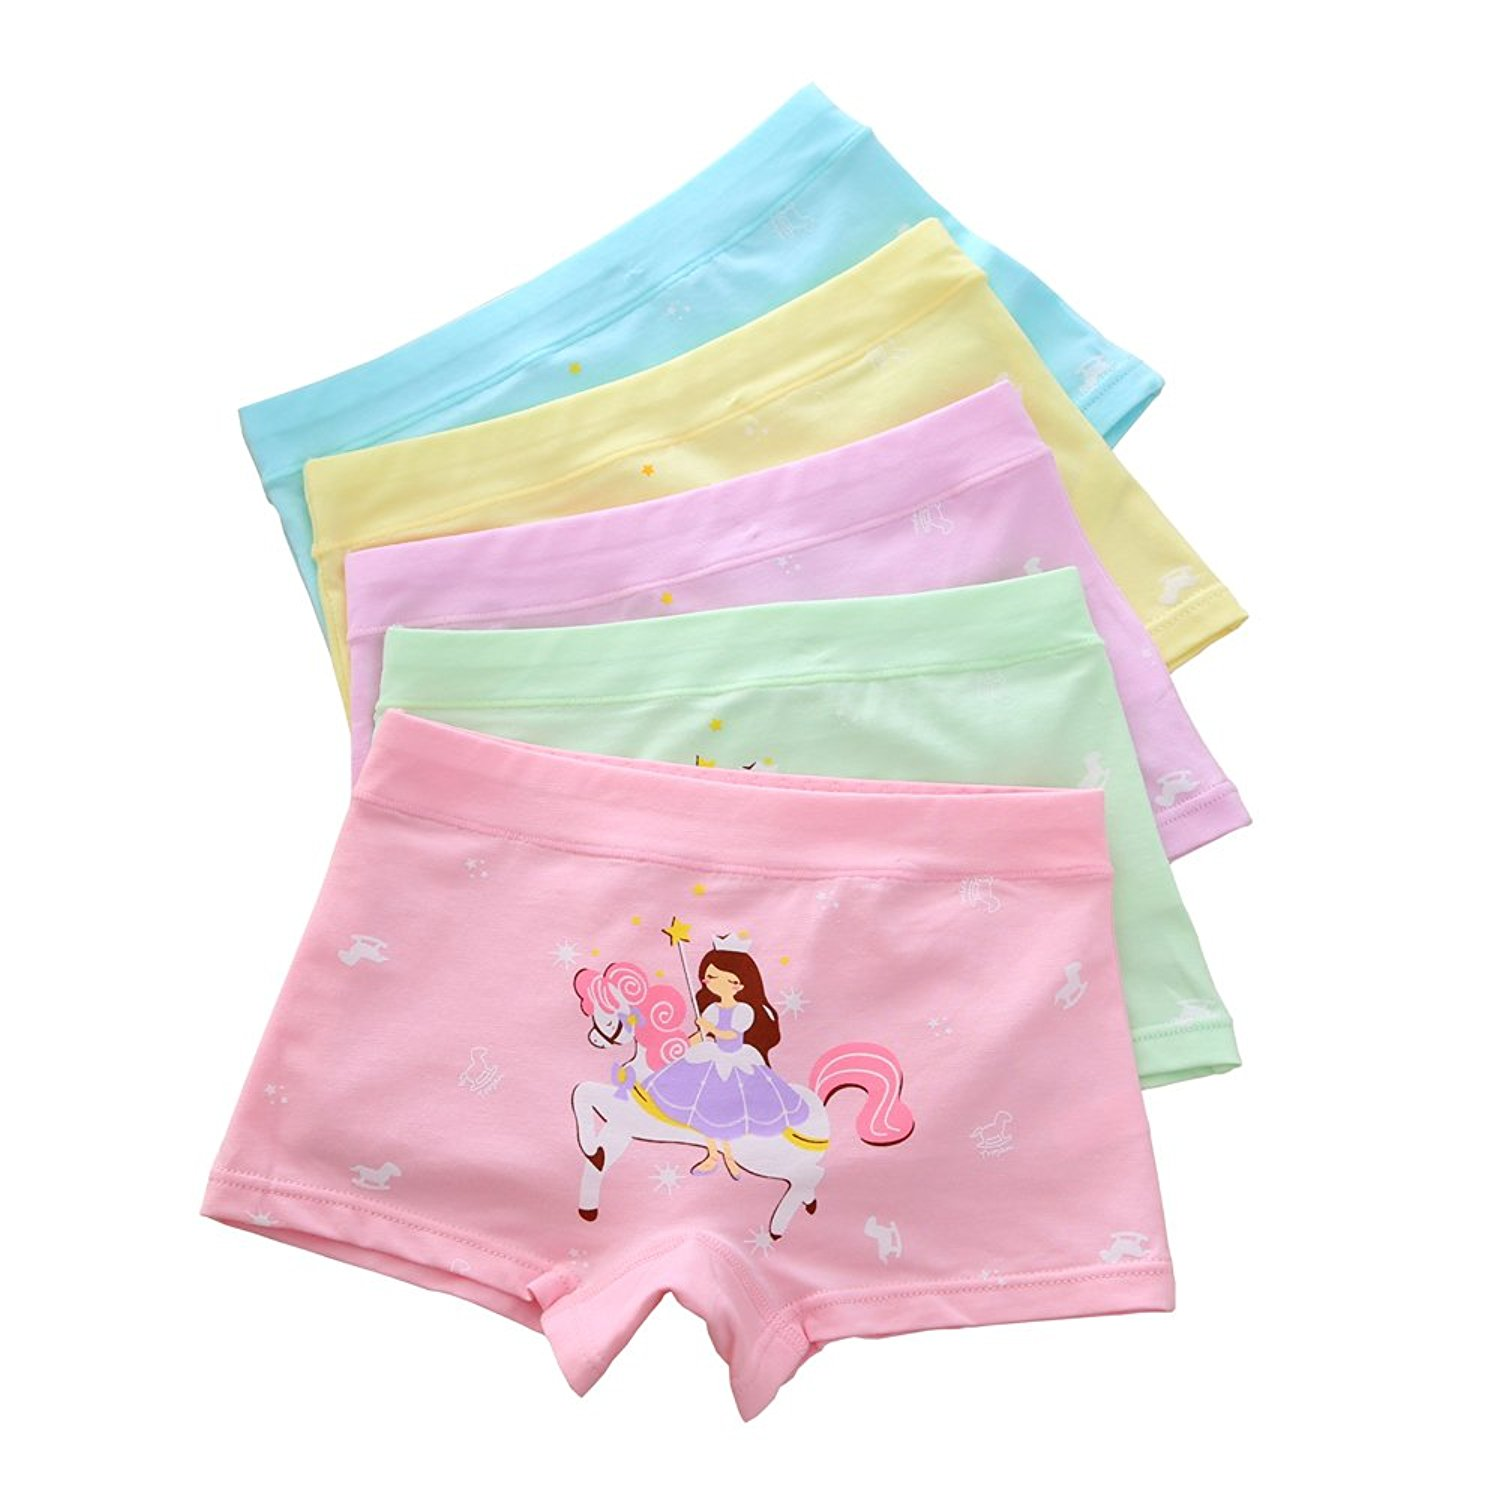 83b6b2a0a673f Jiaboy 5 Of Pack Girls Panties Princess Print Little Girls Underwear Cotton  Boyshorts Hipster Kids Briefs 3-10 Years